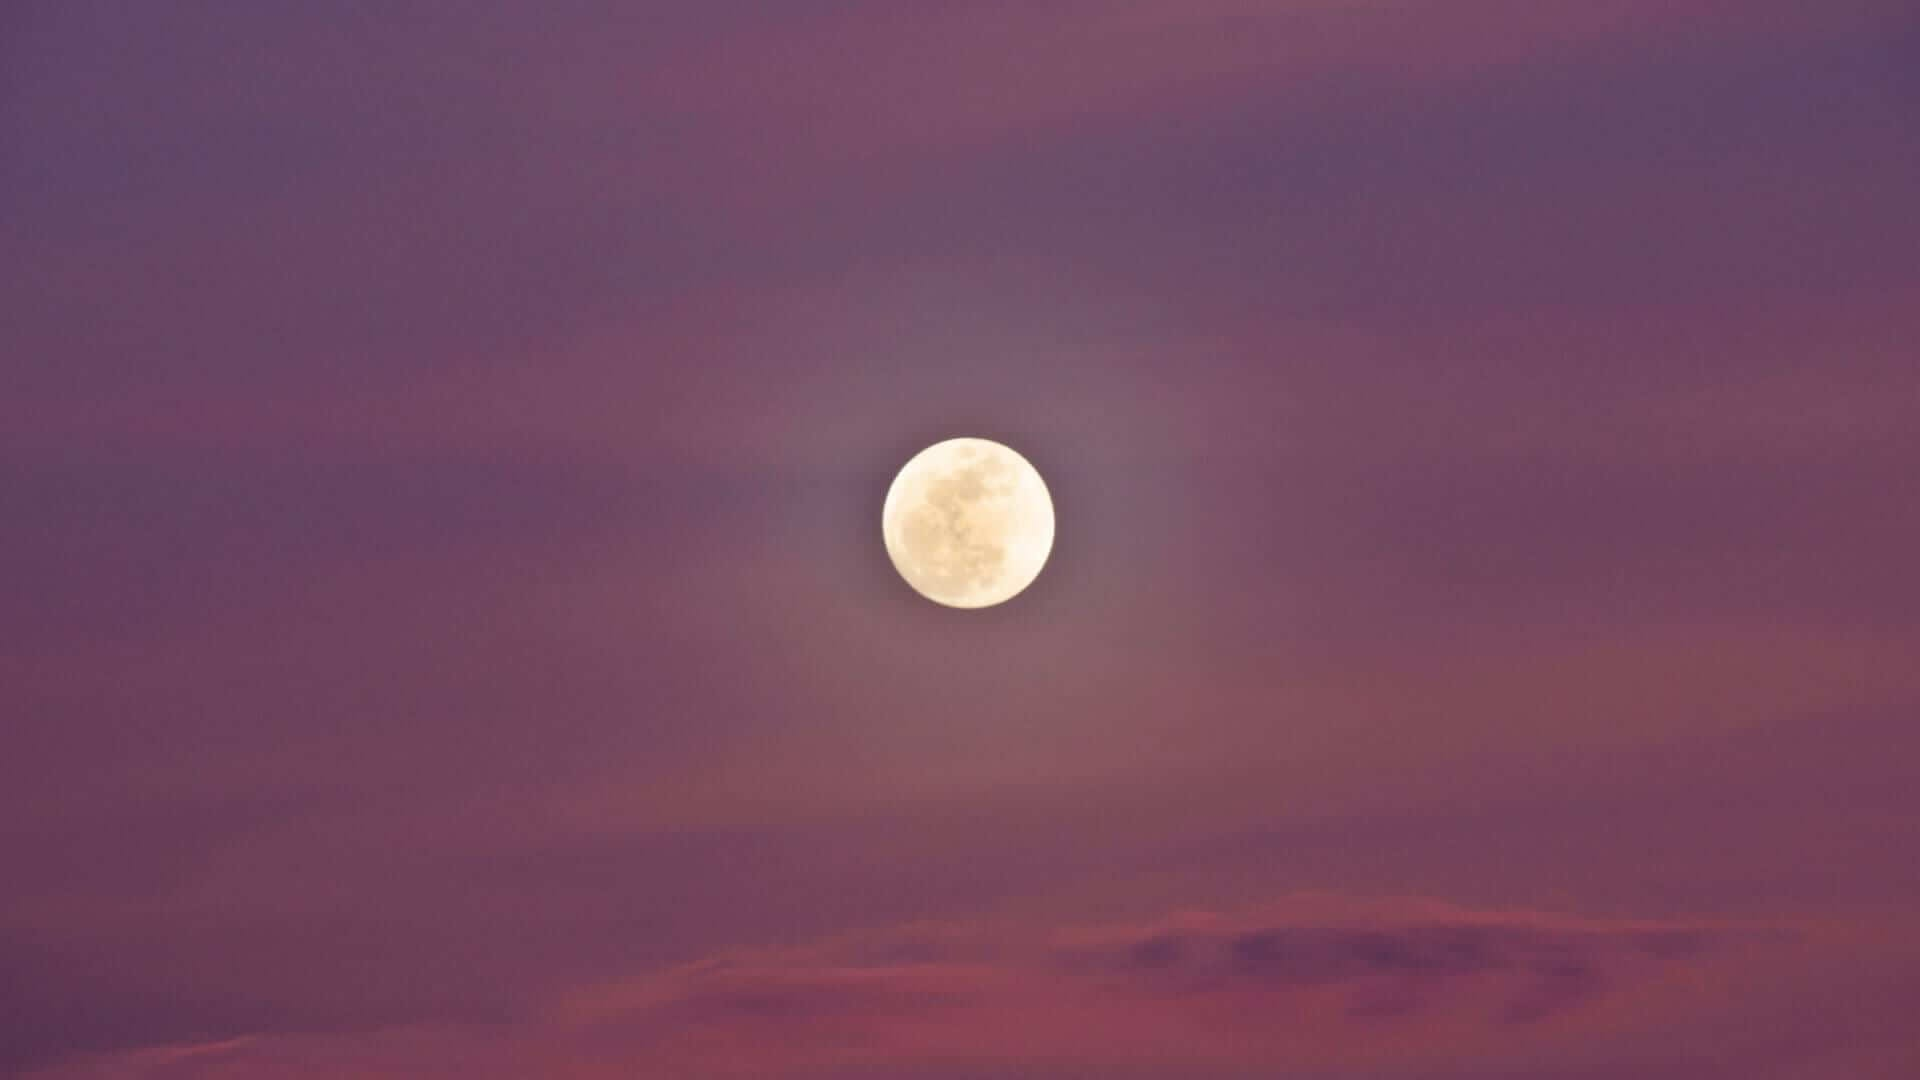 The moon is shining and the sky is purple in South Korea.